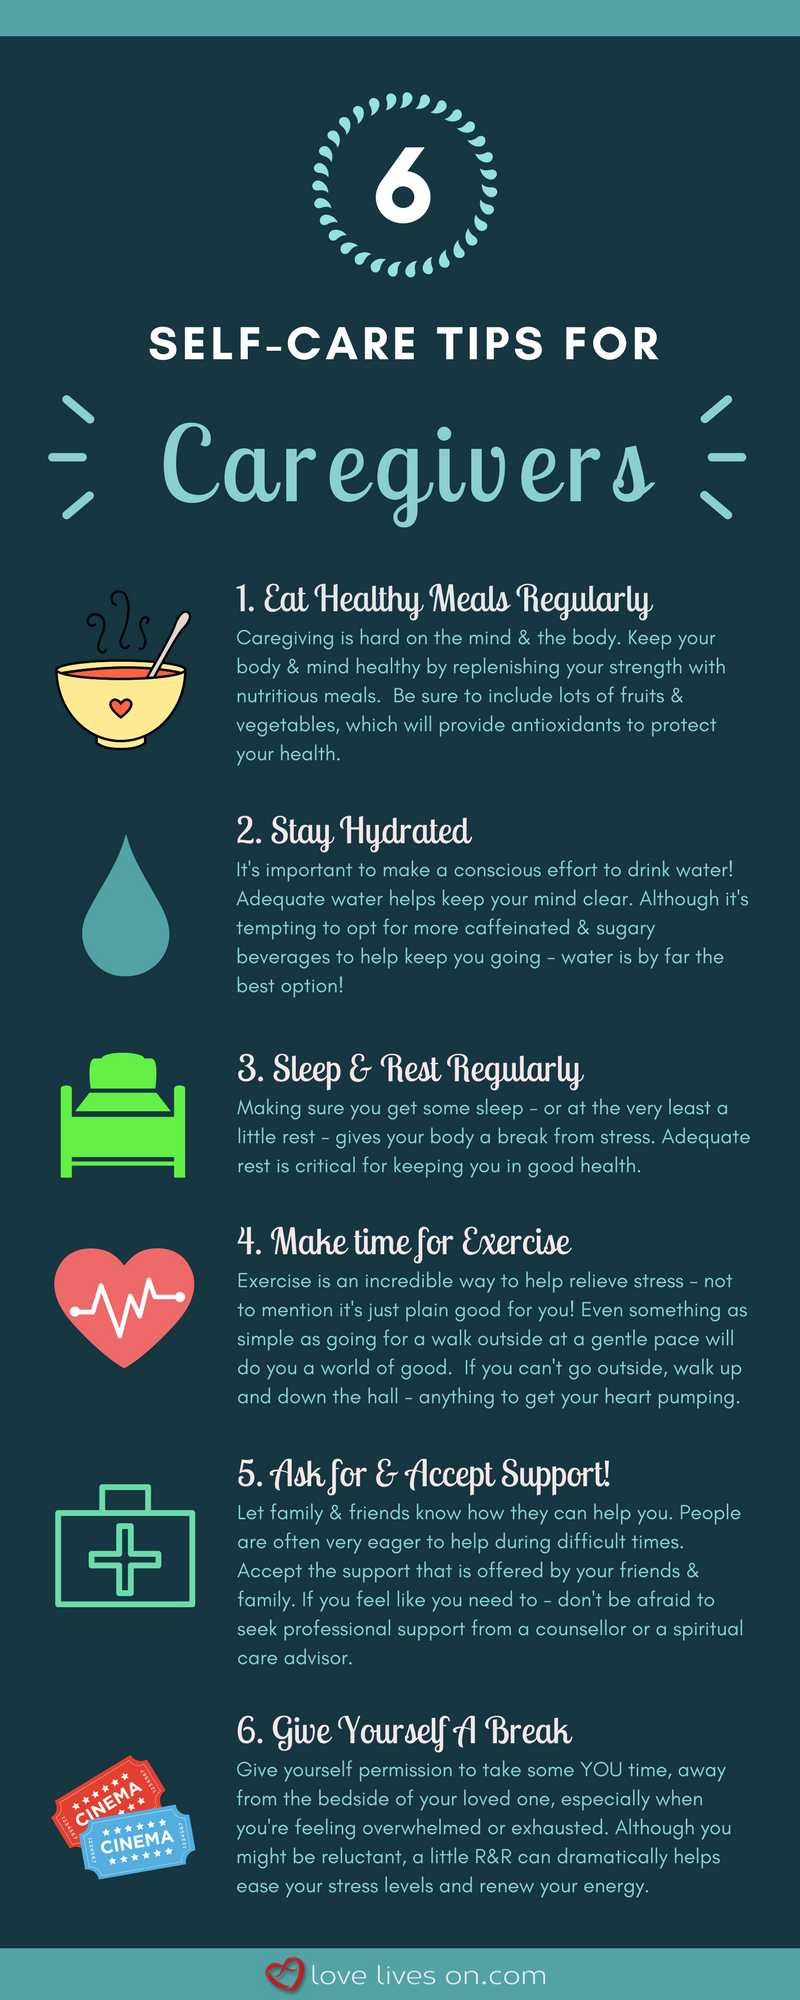 [Infographic] Self Care Tips for Caregivers